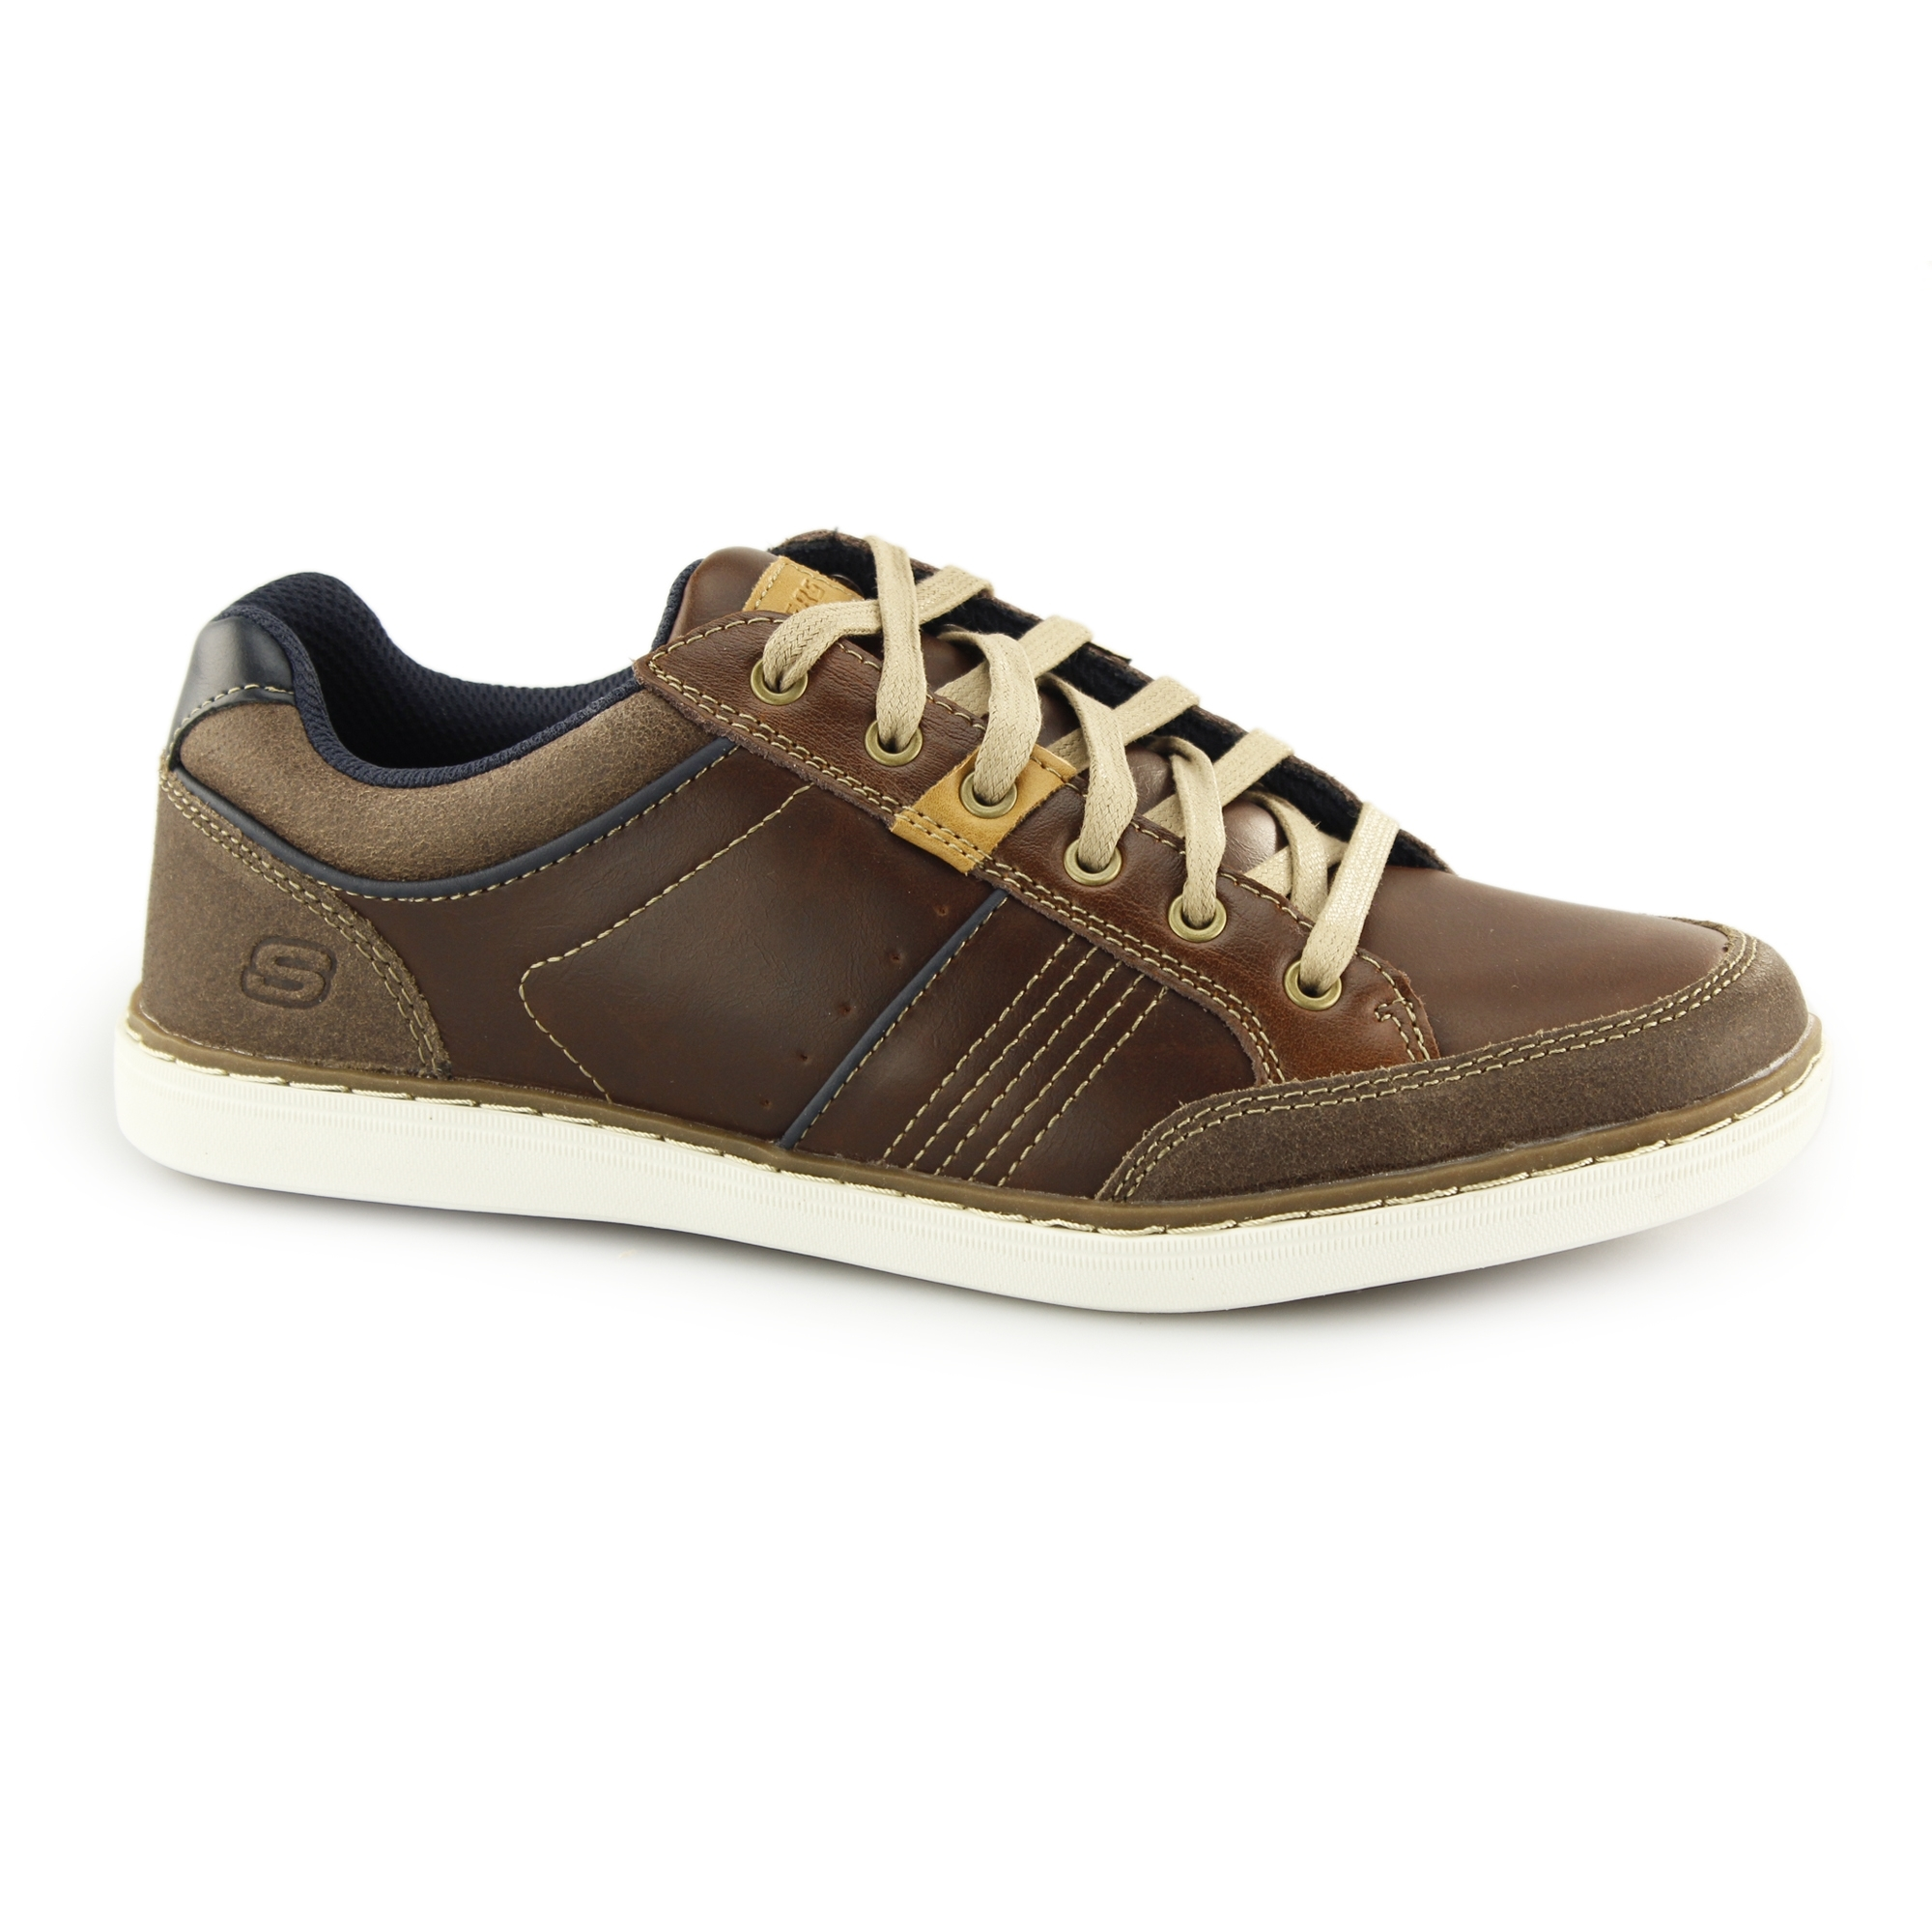 b23a940091fd Skechers LANSON-ROMETO Mens Leather Trainers Shoes Red Brown